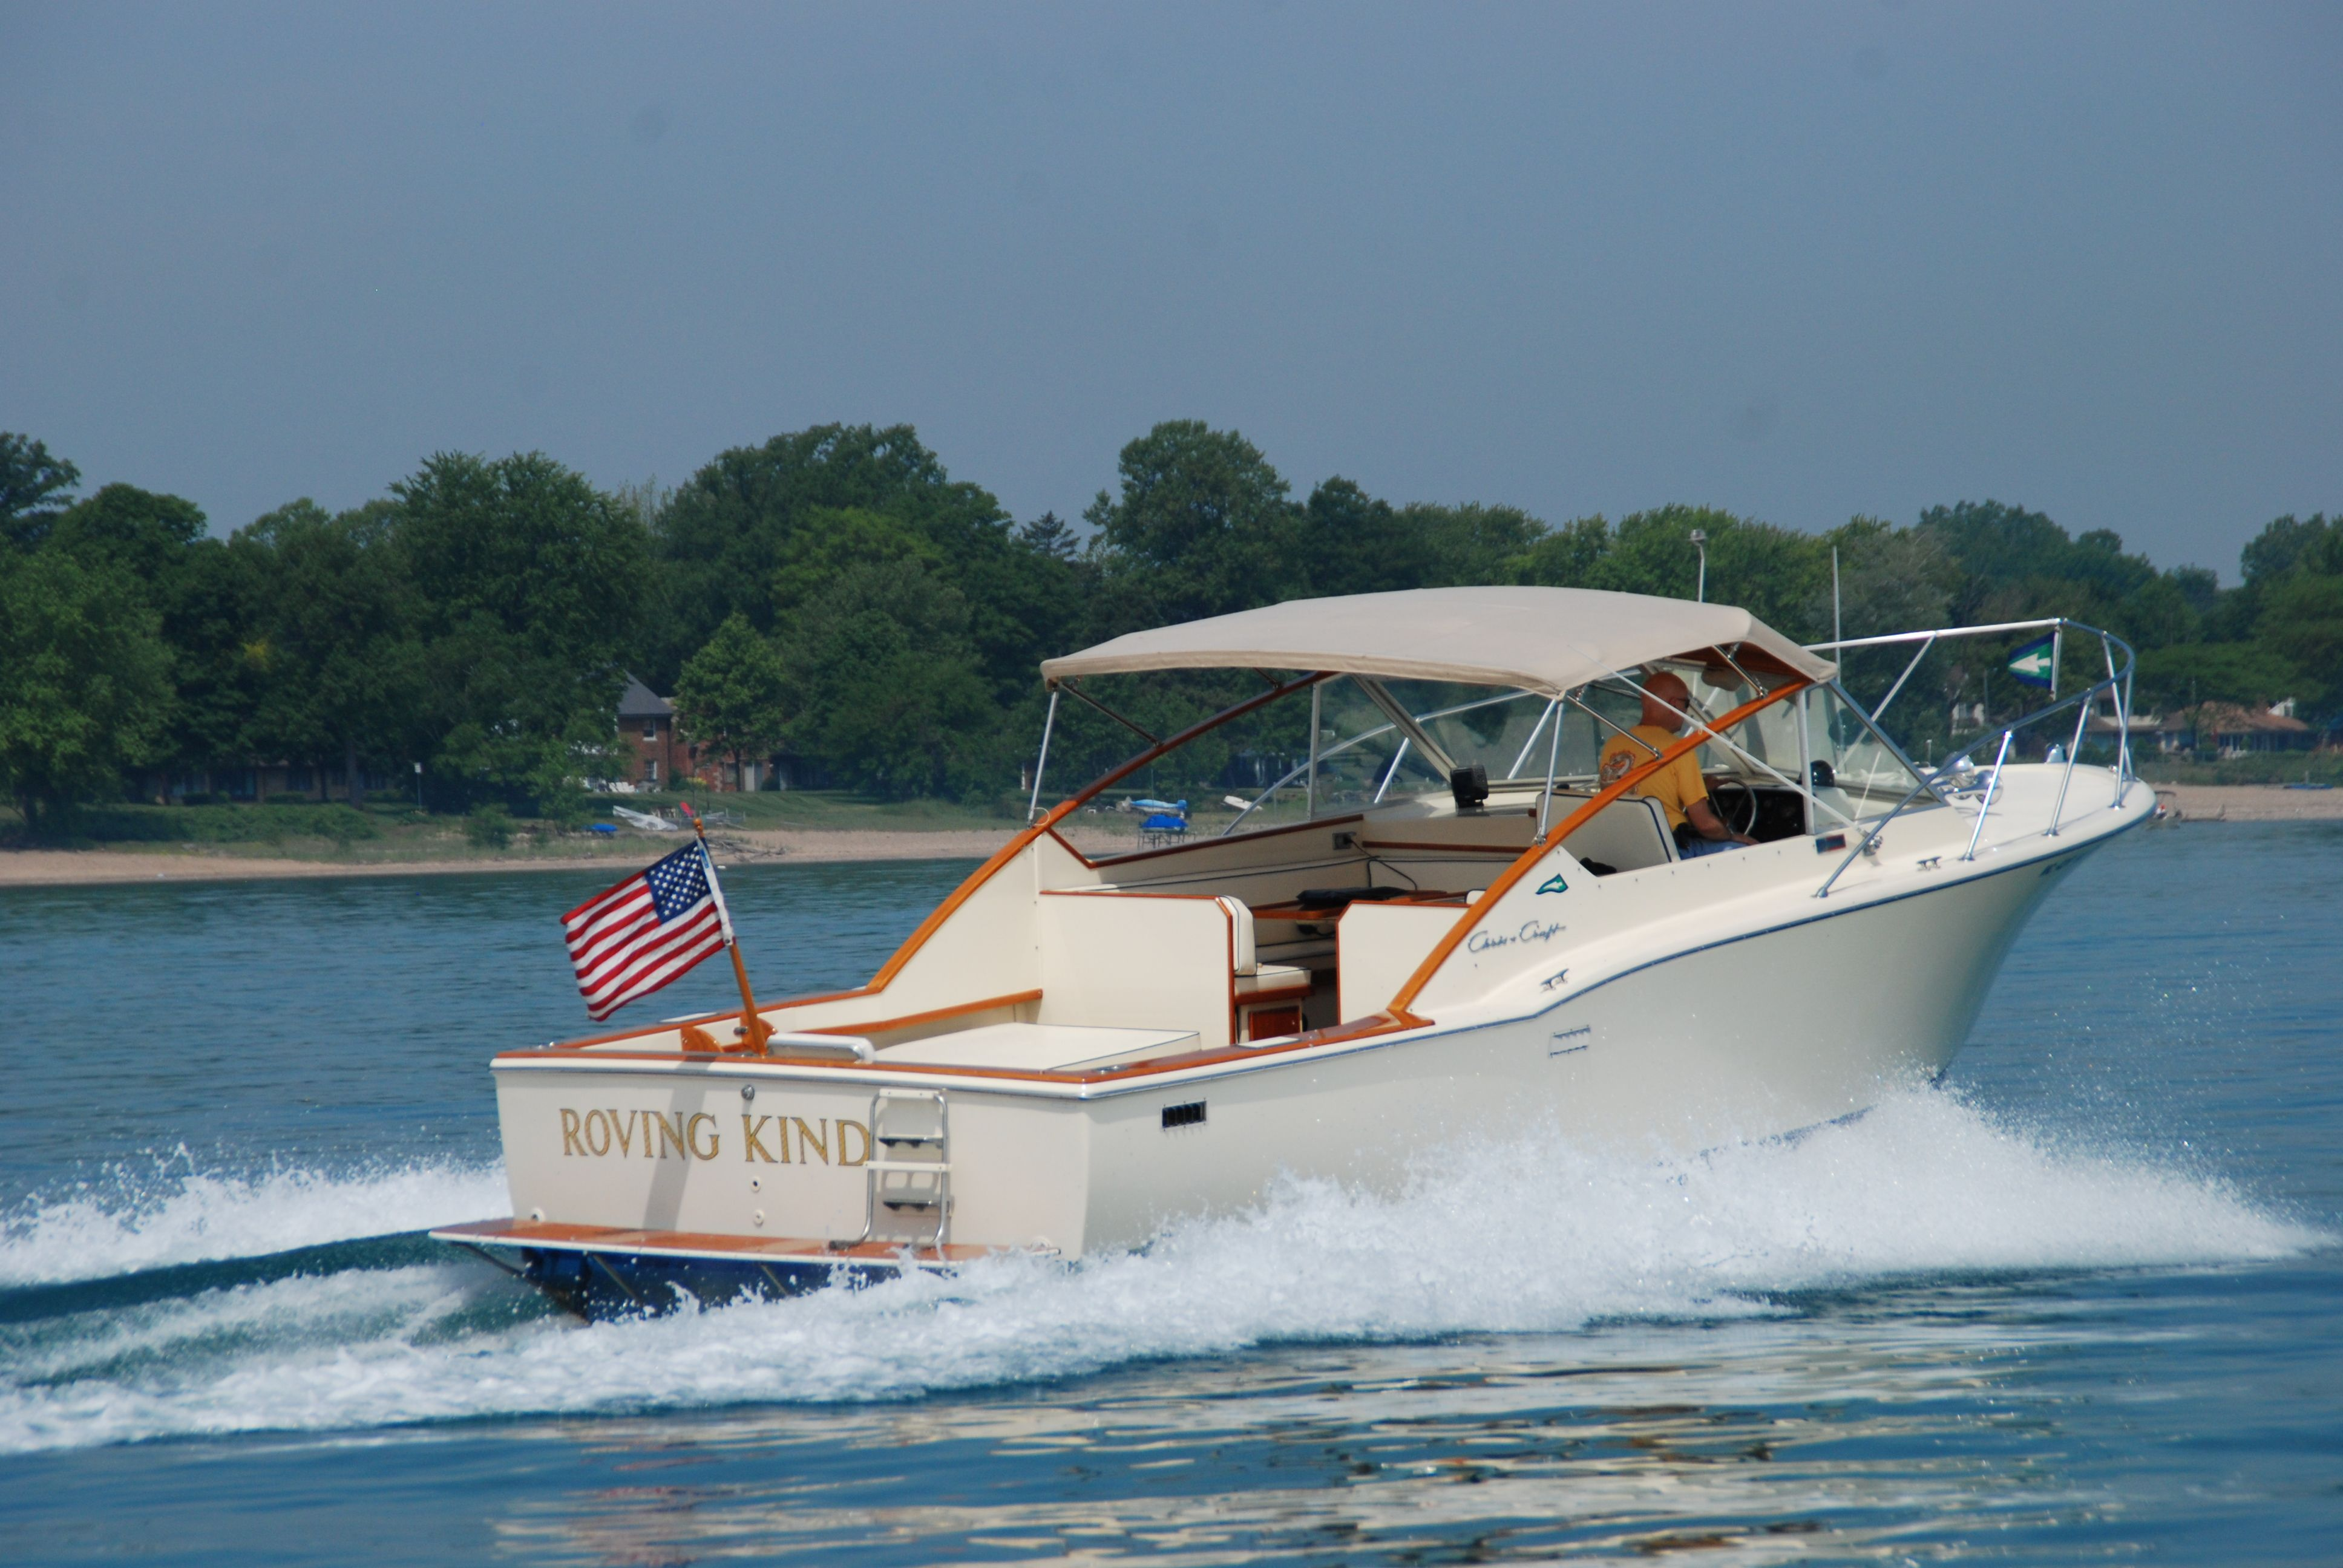 Tag Craigslist Boats For Sale Ohio as well Vicem Motor Yacht Vintage 107 further Chriscraftmodels likewise Monterey 270 Cruiser 64355 moreover 386605949234818351. on chris craft cabin cruiser